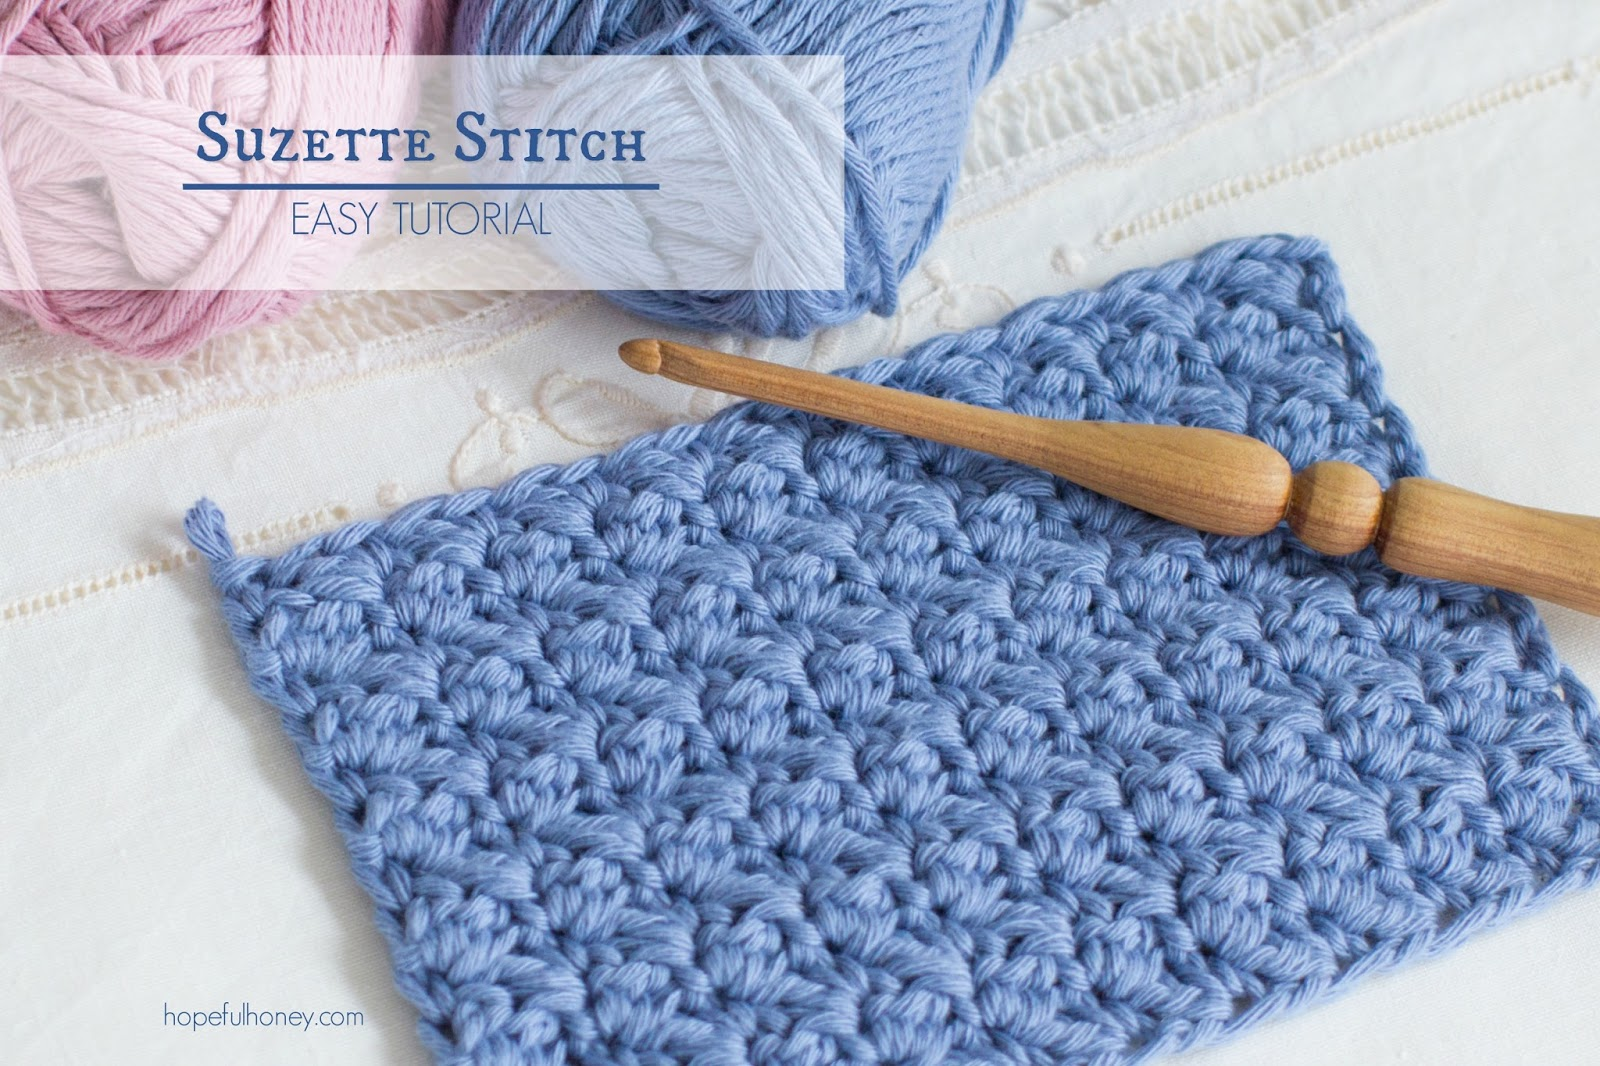 Crochet Stitches How To Videos : ... , Crochet, Create: How To: Crochet The Suzette Stitch - Easy Tutorial